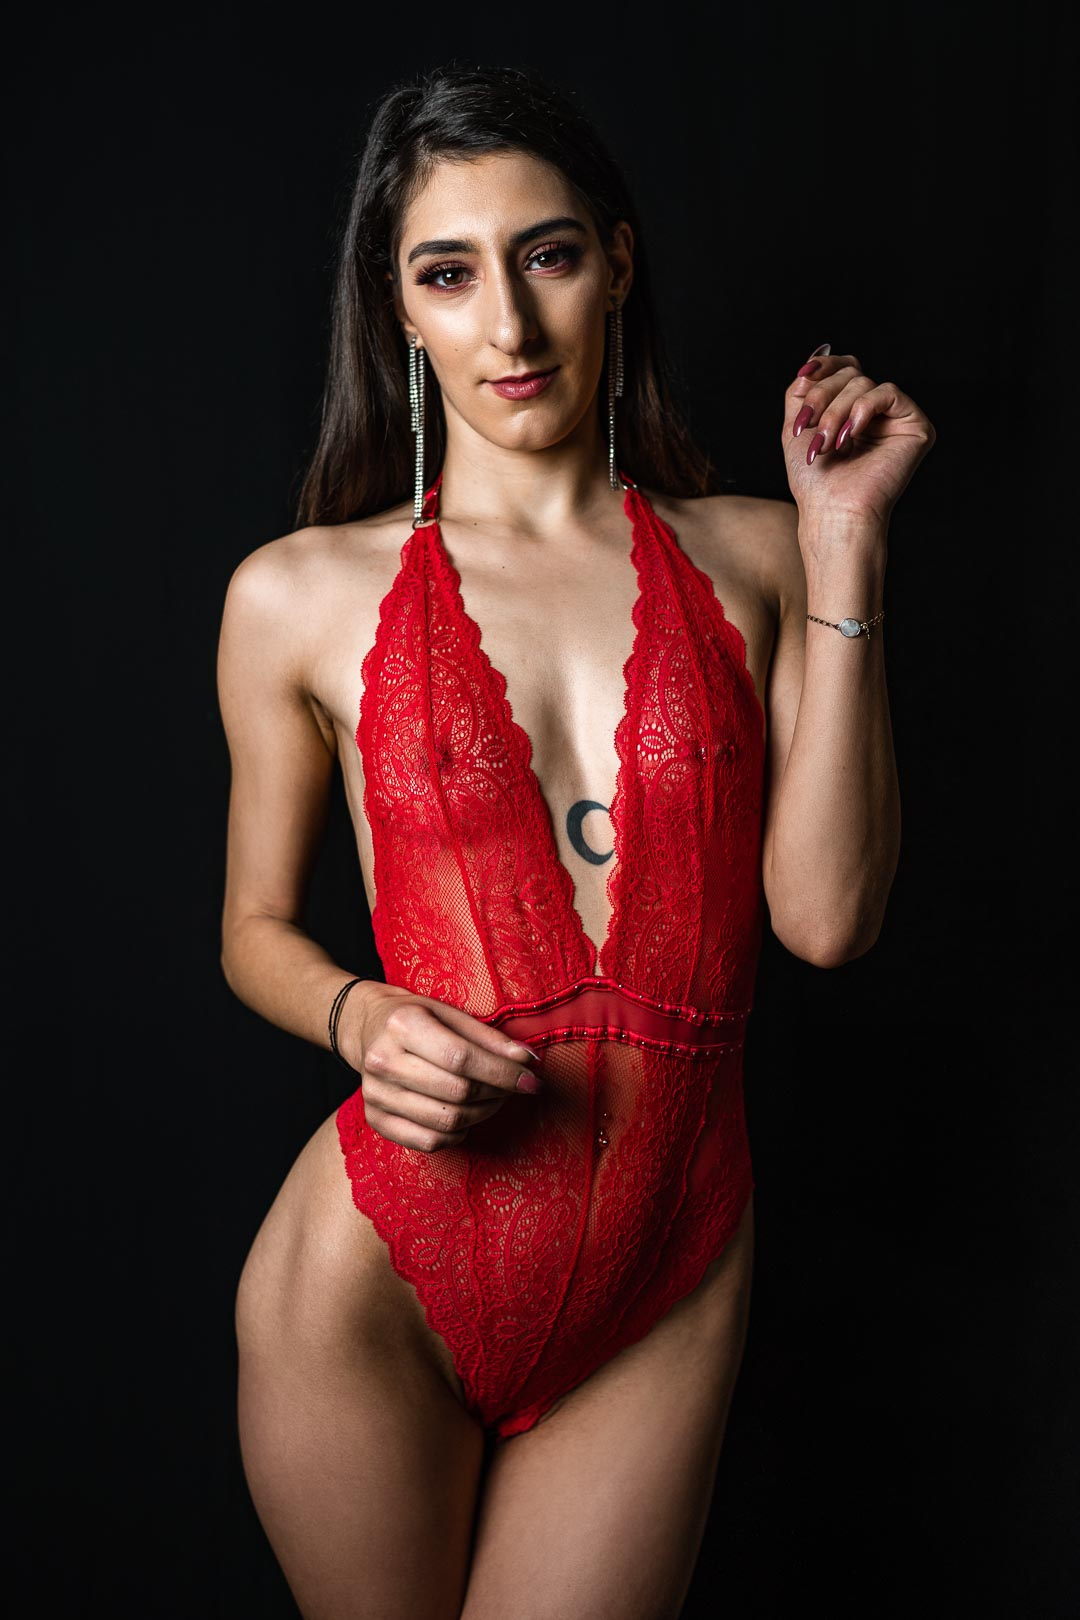 Portrait of a woman in red lingerie in photo studio